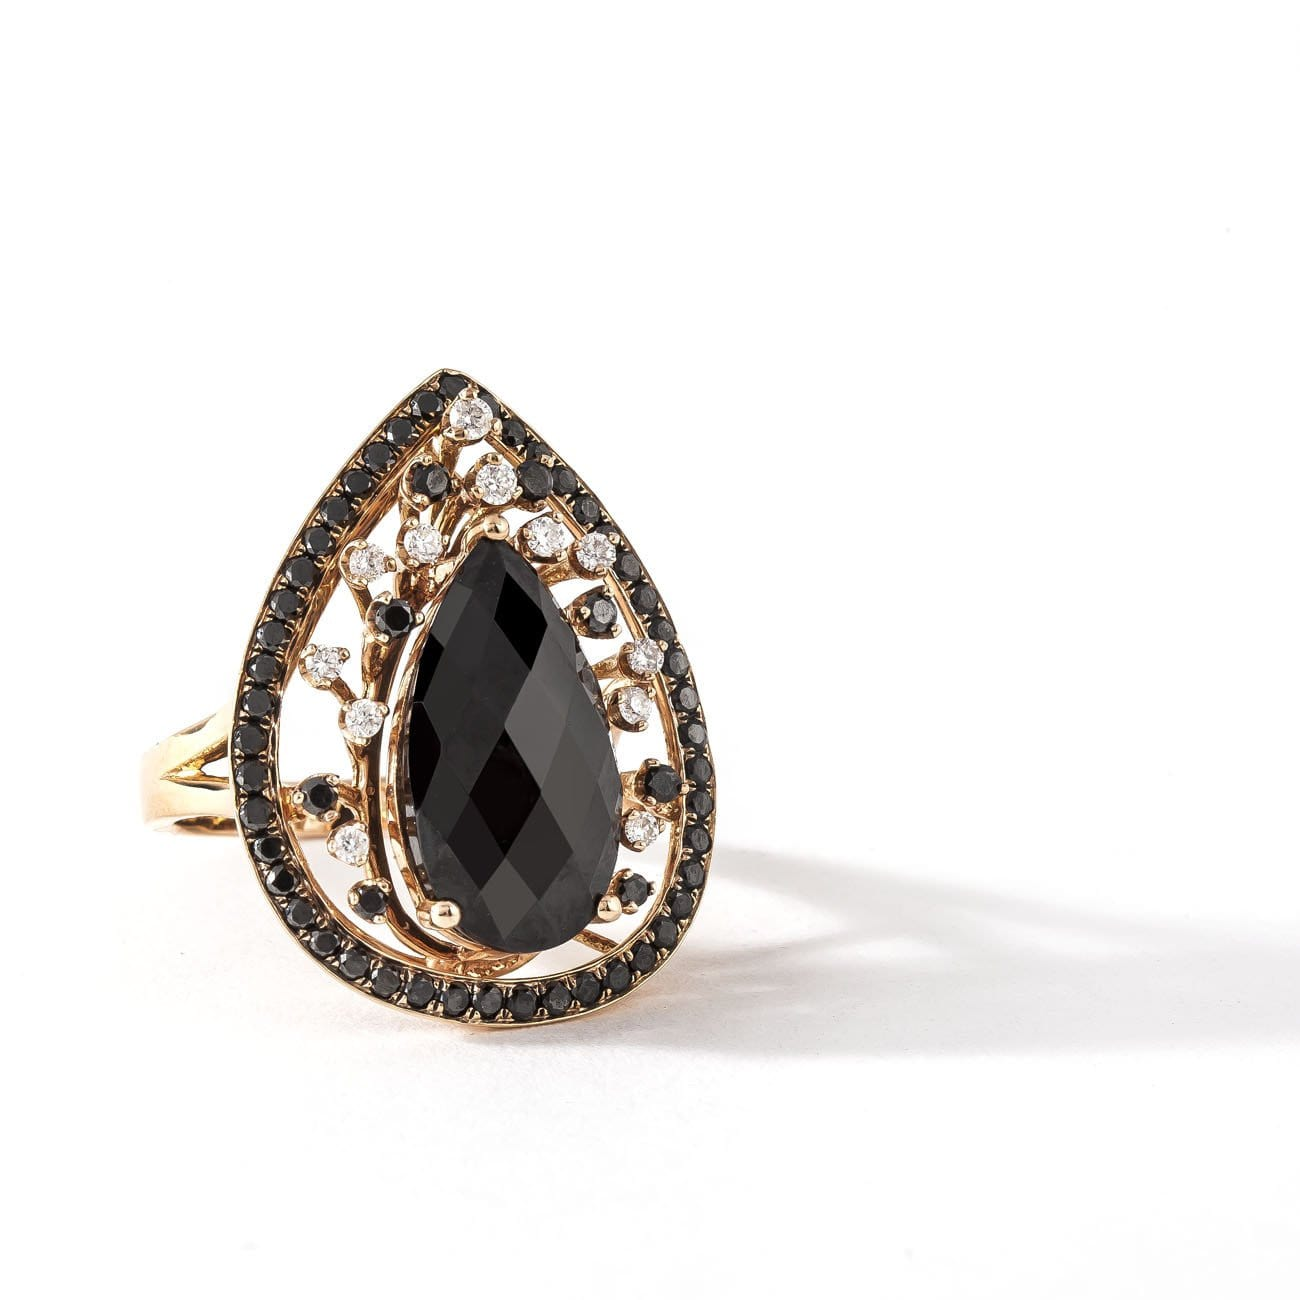 BLACK DIAMOND RING - PEAR MYSTERY - Chris Aire Fine Jewelry & Timepieces